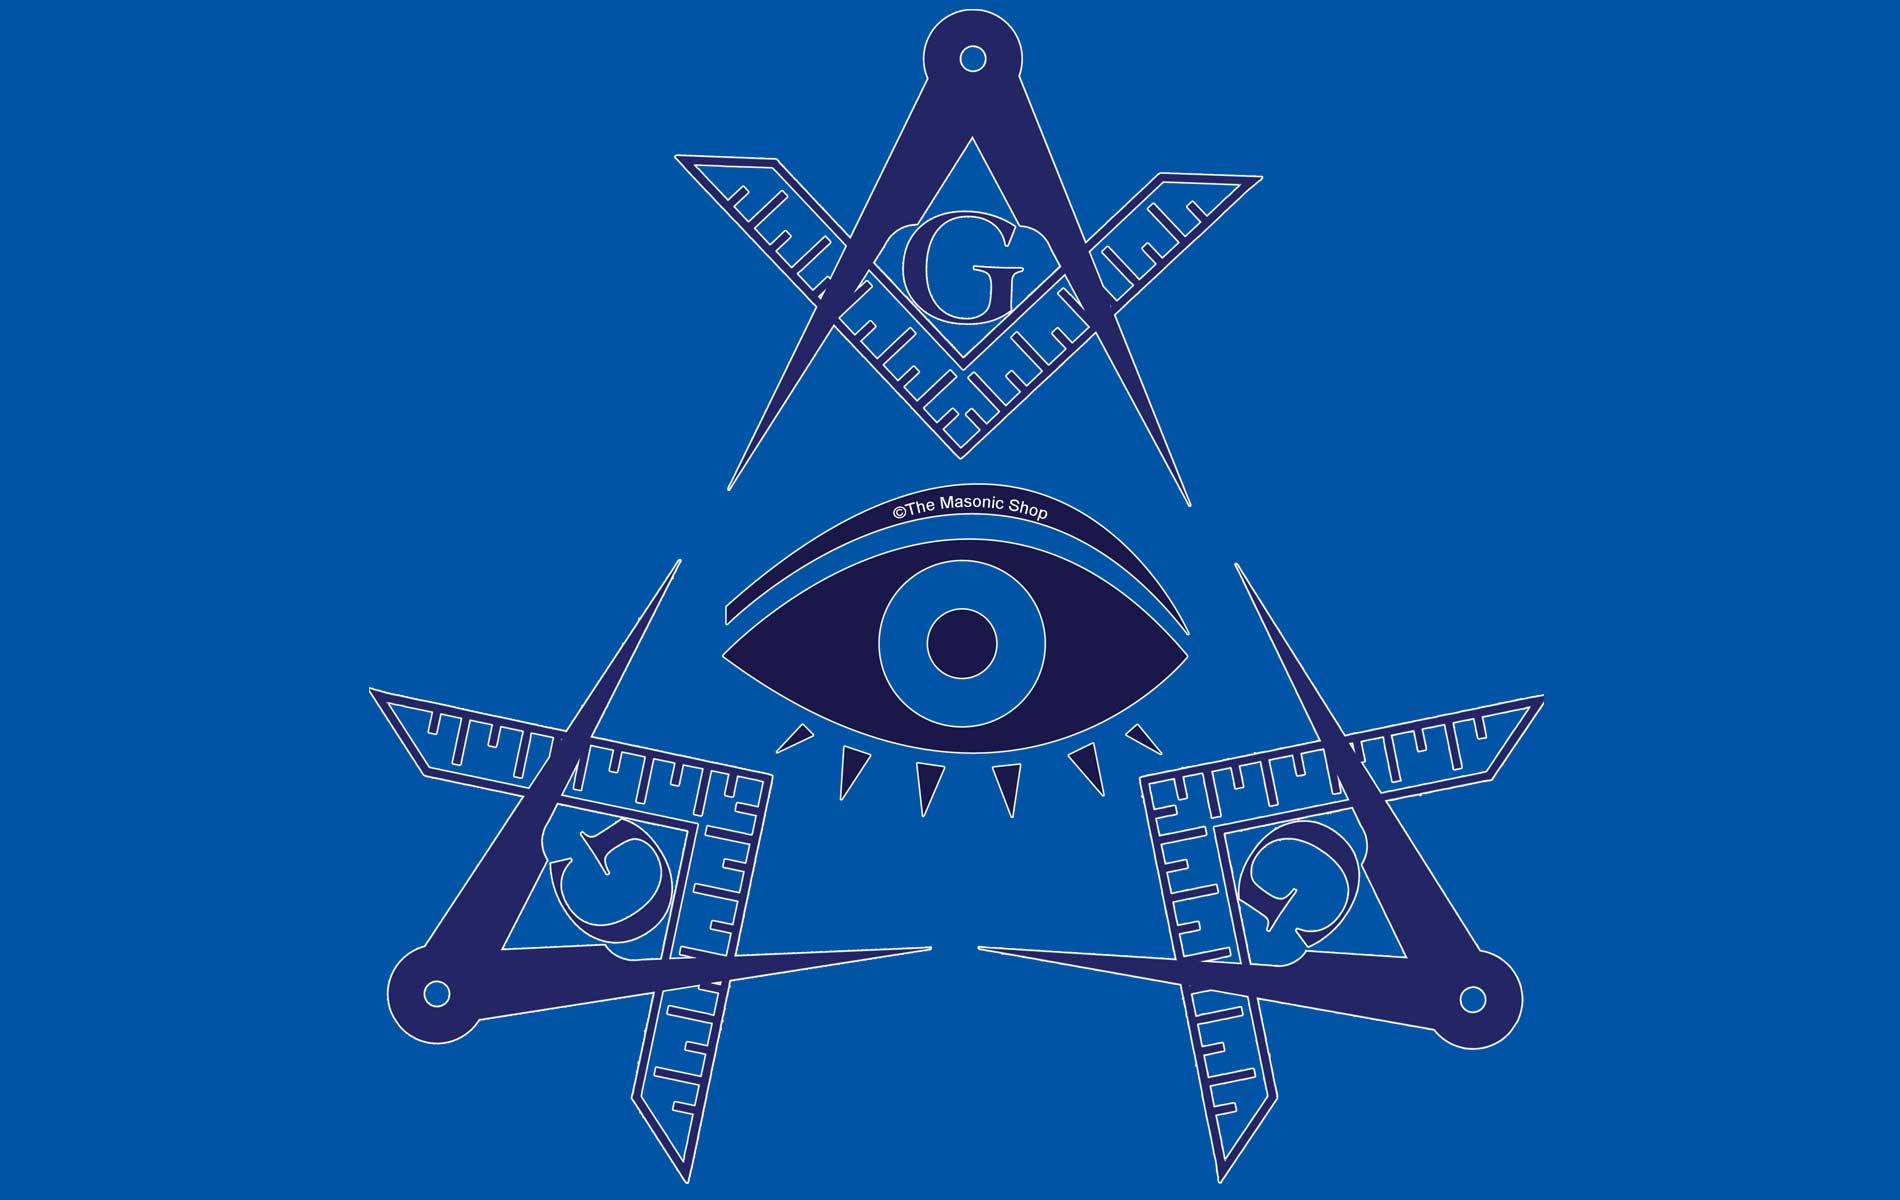 Iphone Wallpaper Freemason Wallpaper | HDGalaxyWallpaper